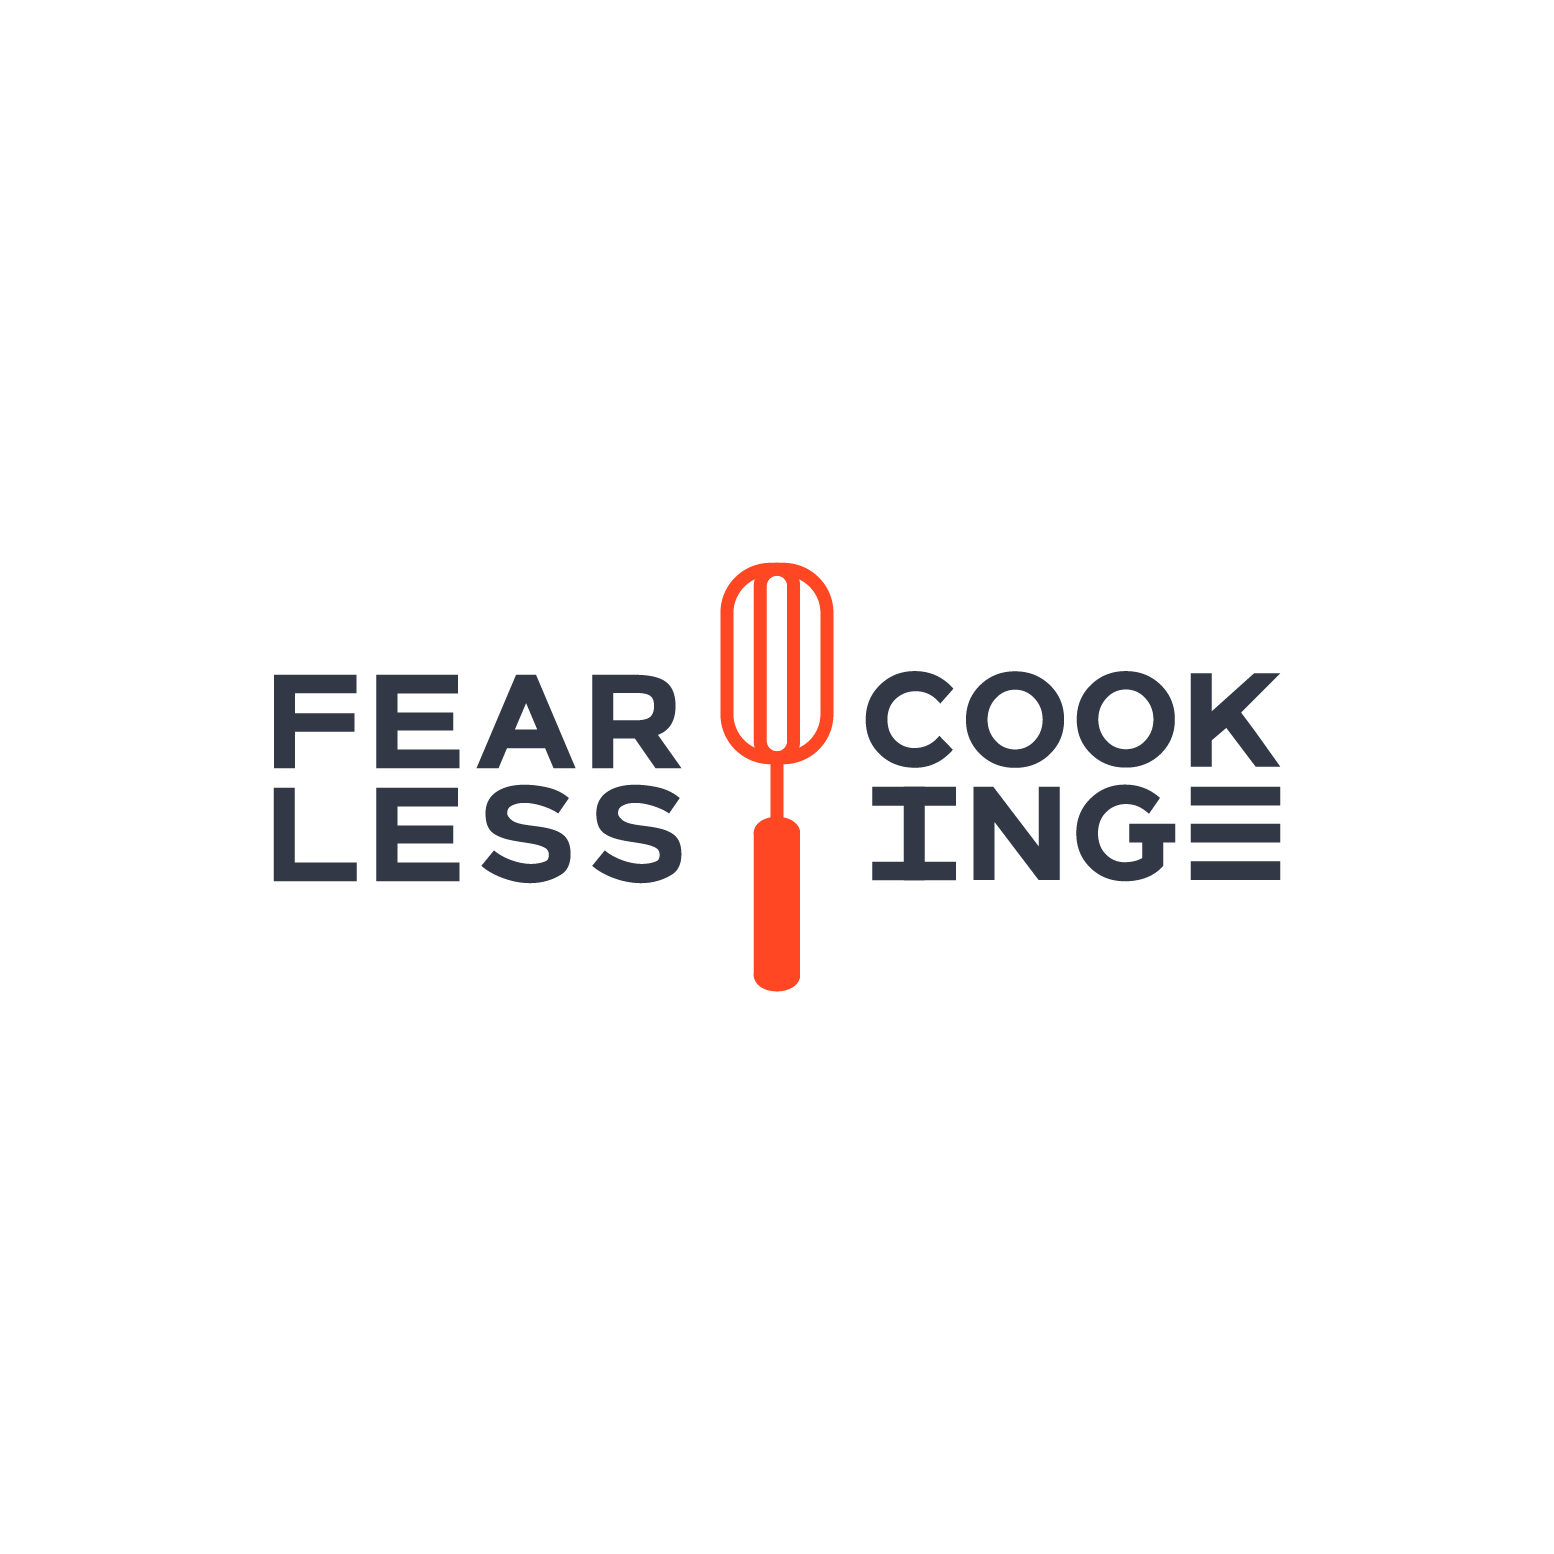 Fearless Cooking - Chicago, IL 60630 - (773)647-1165 | ShowMeLocal.com